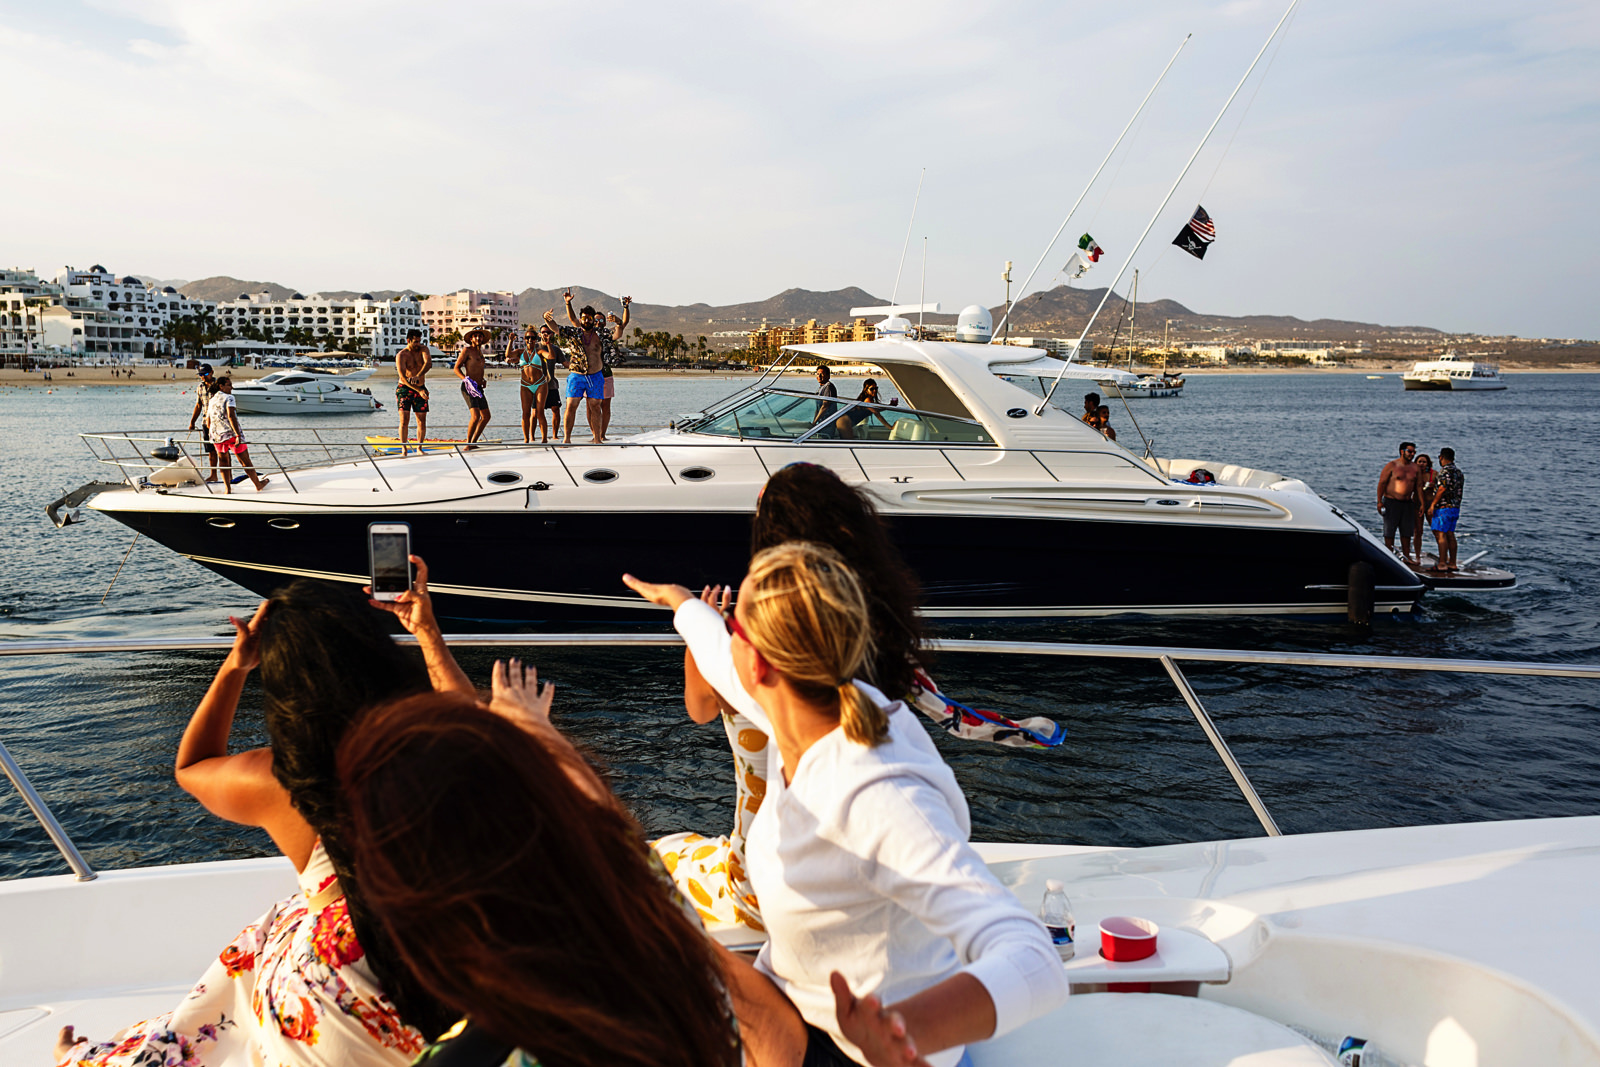 Waving hello to another yacht that is also partying at Cabo San Lucas